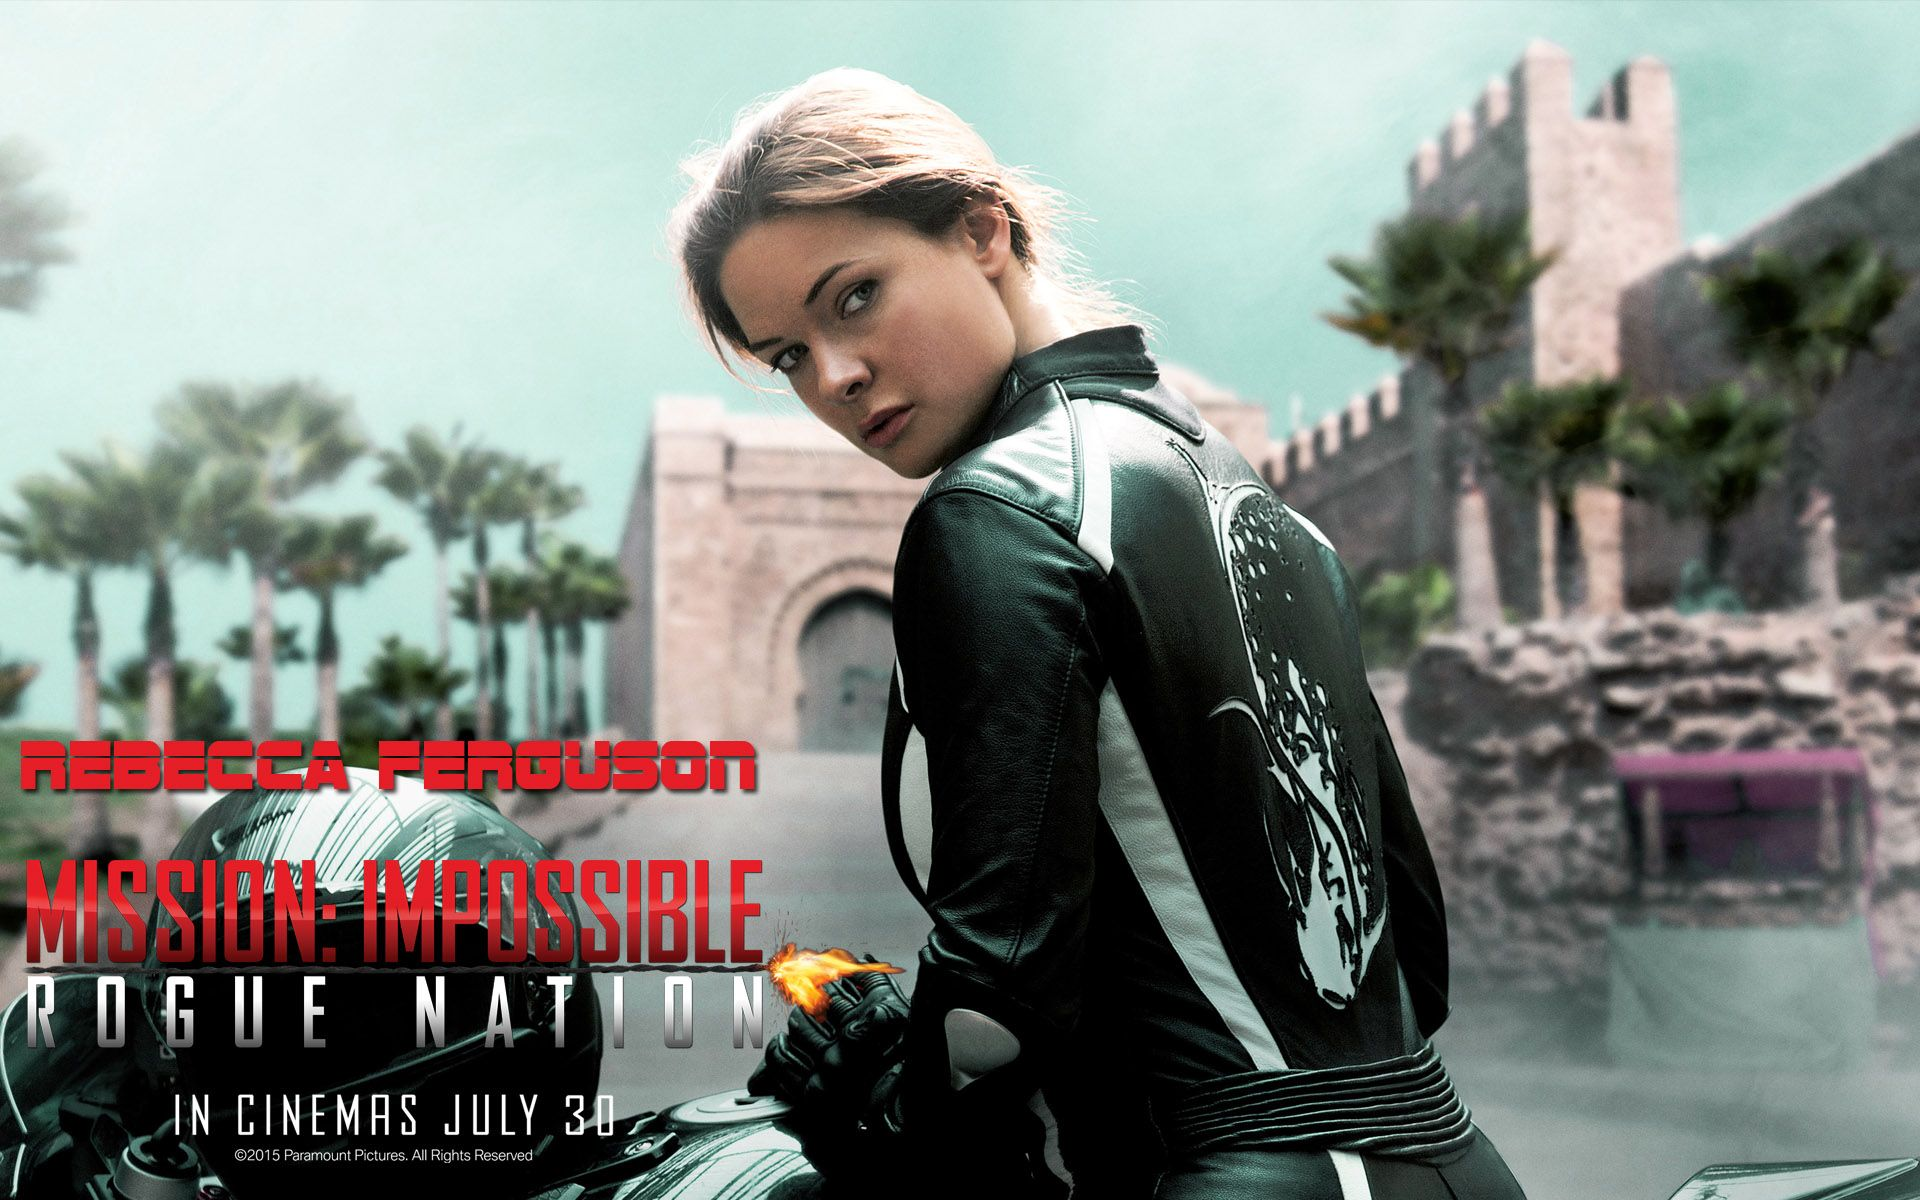 mission impossible rogue nation actress rebecca ferguson wallpapers